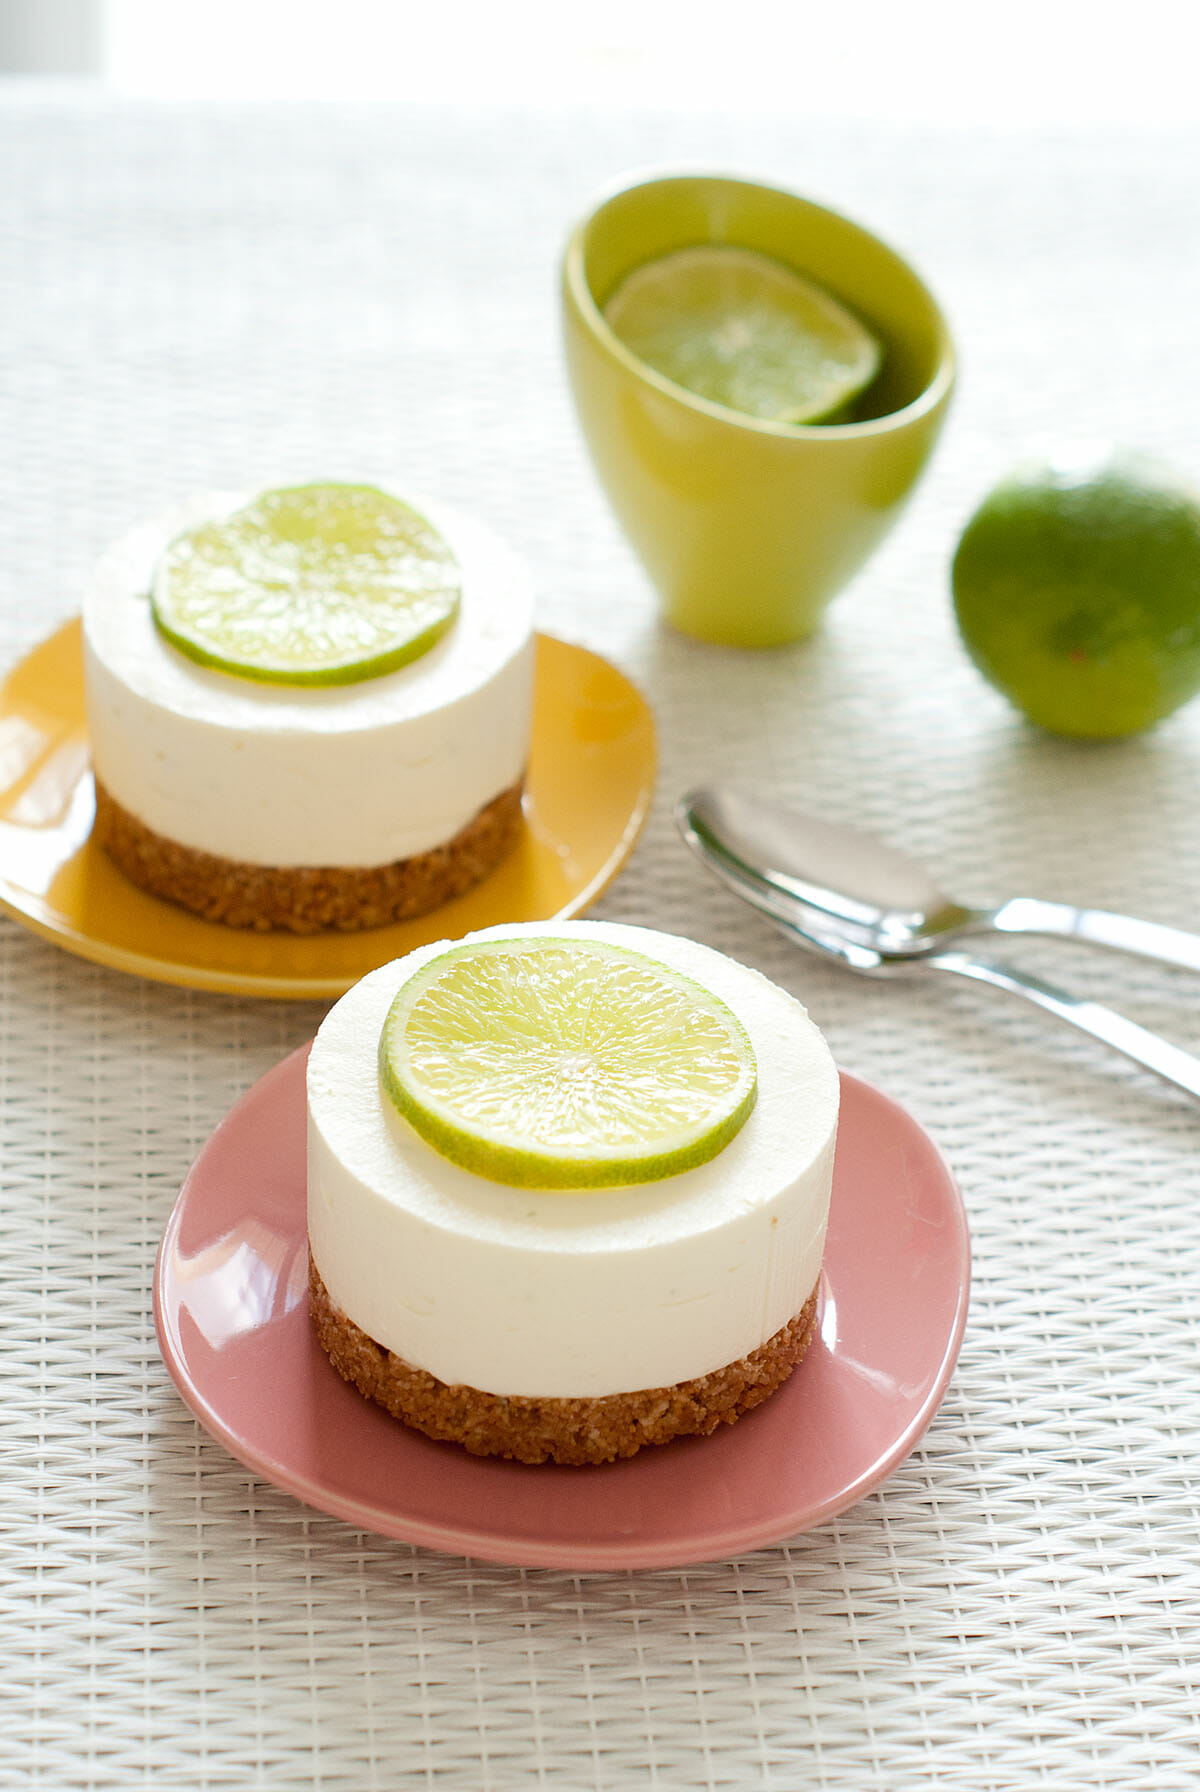 mini cheesecake glac au citron vert lilie bakery. Black Bedroom Furniture Sets. Home Design Ideas